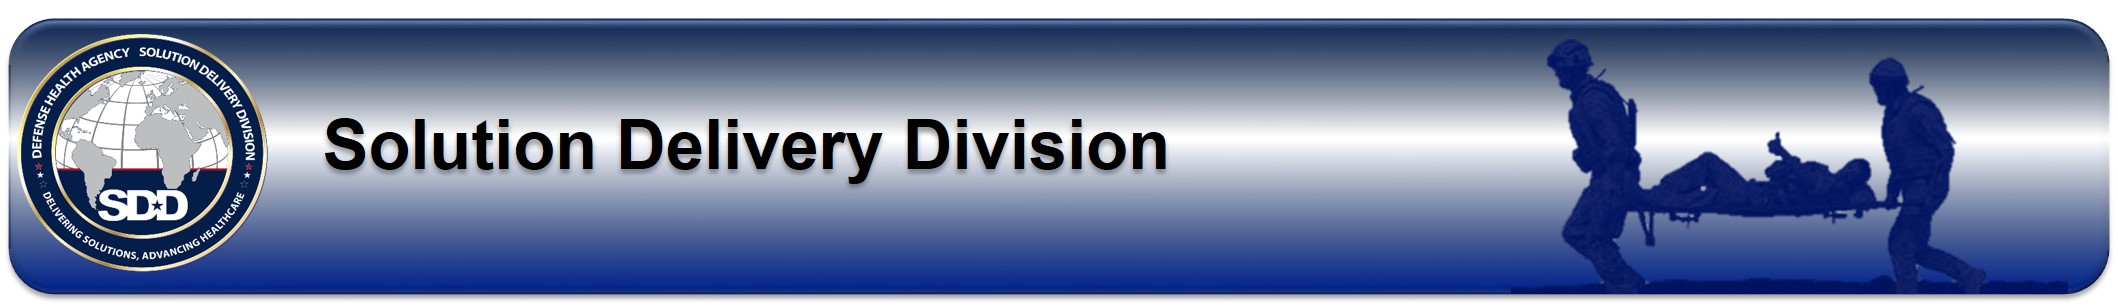 Solution Delivery Division Banner